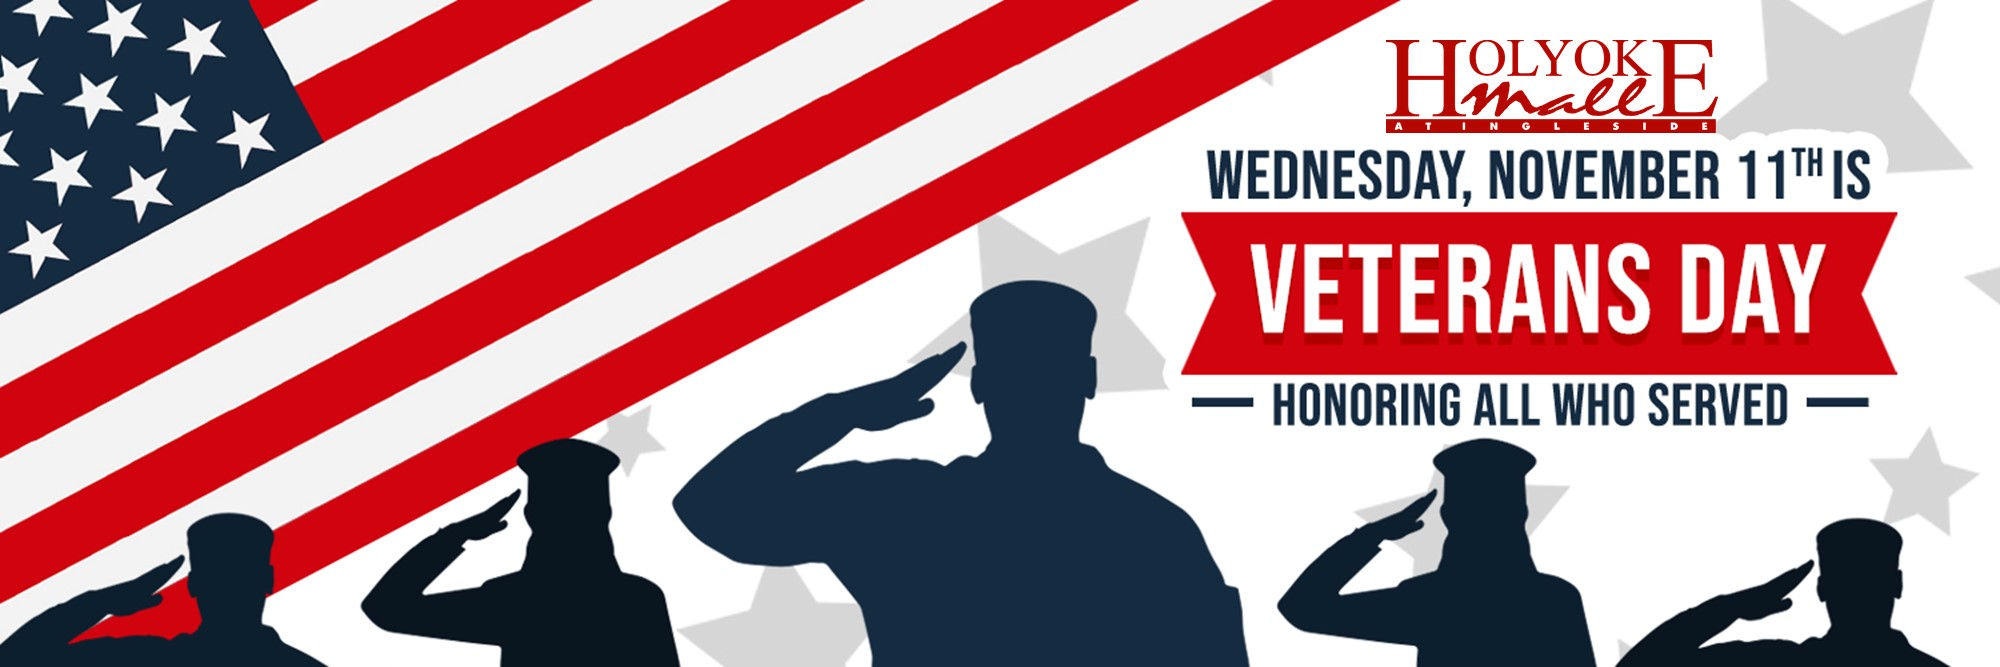 2020 10 28 Veterans Blog Header